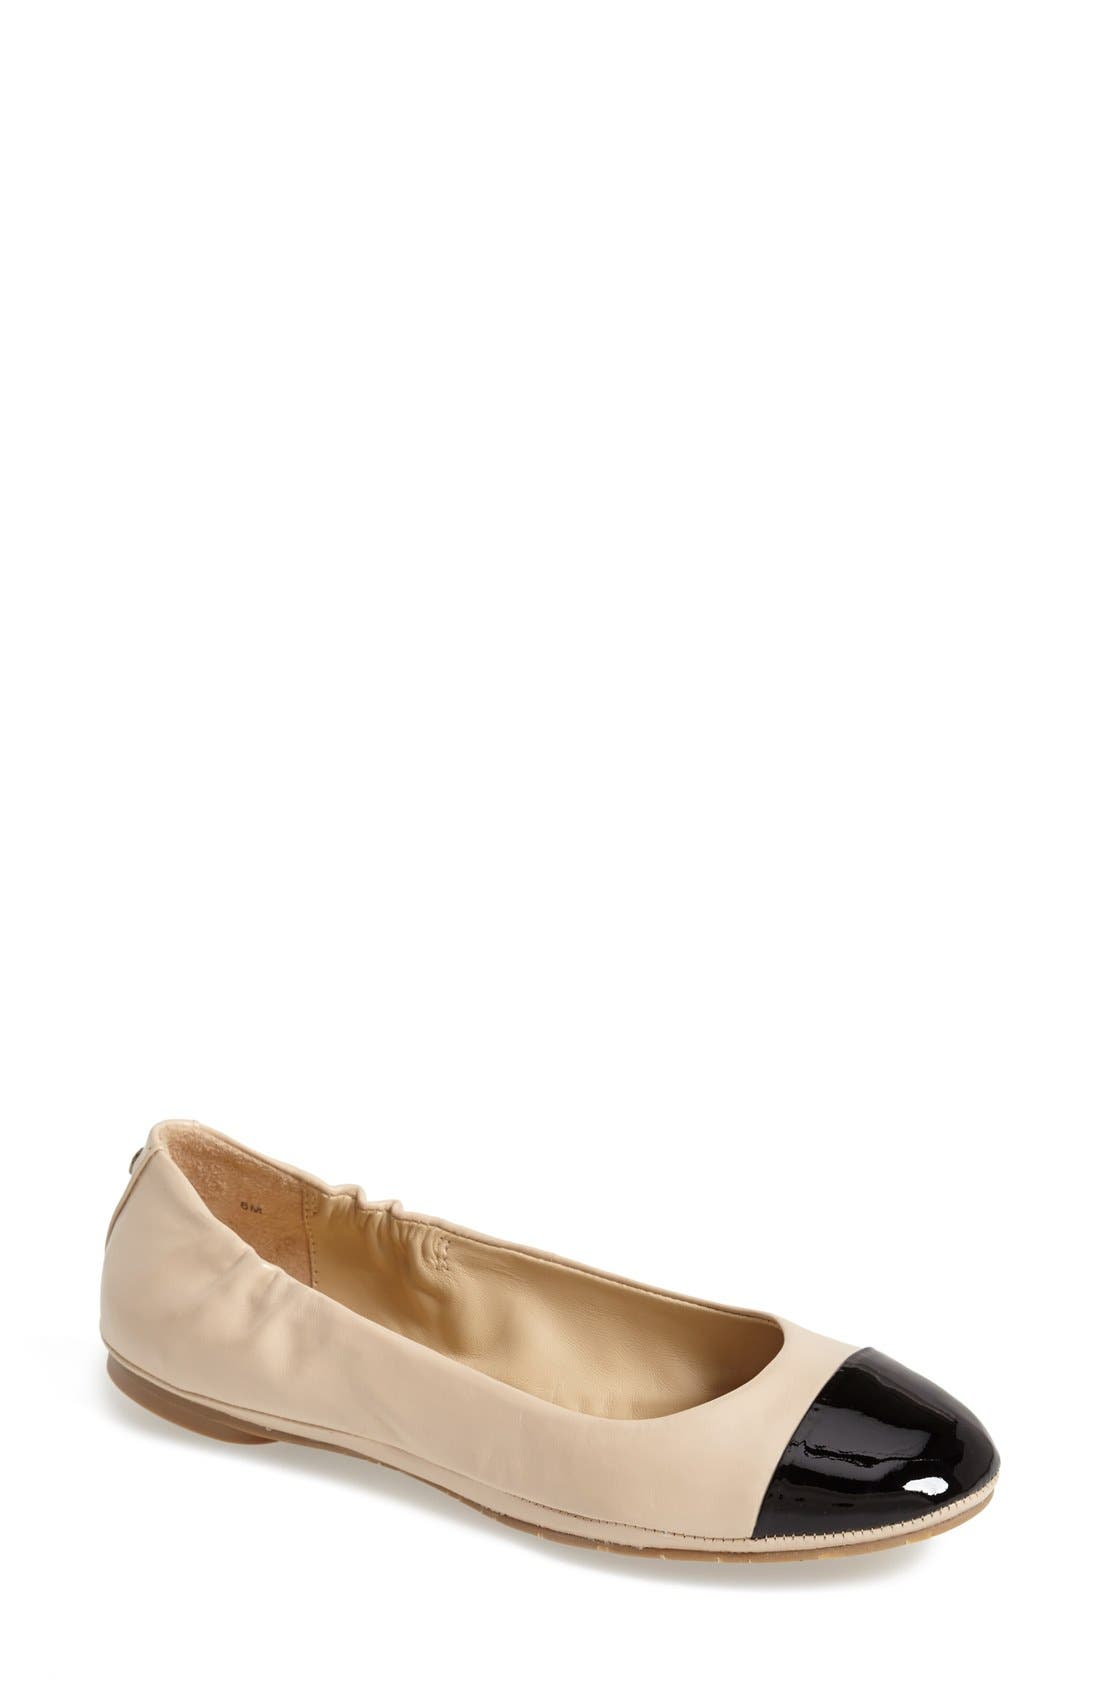 Alternate Image 1 Selected - Delman 'Maya' Skimmer Flat (Women)